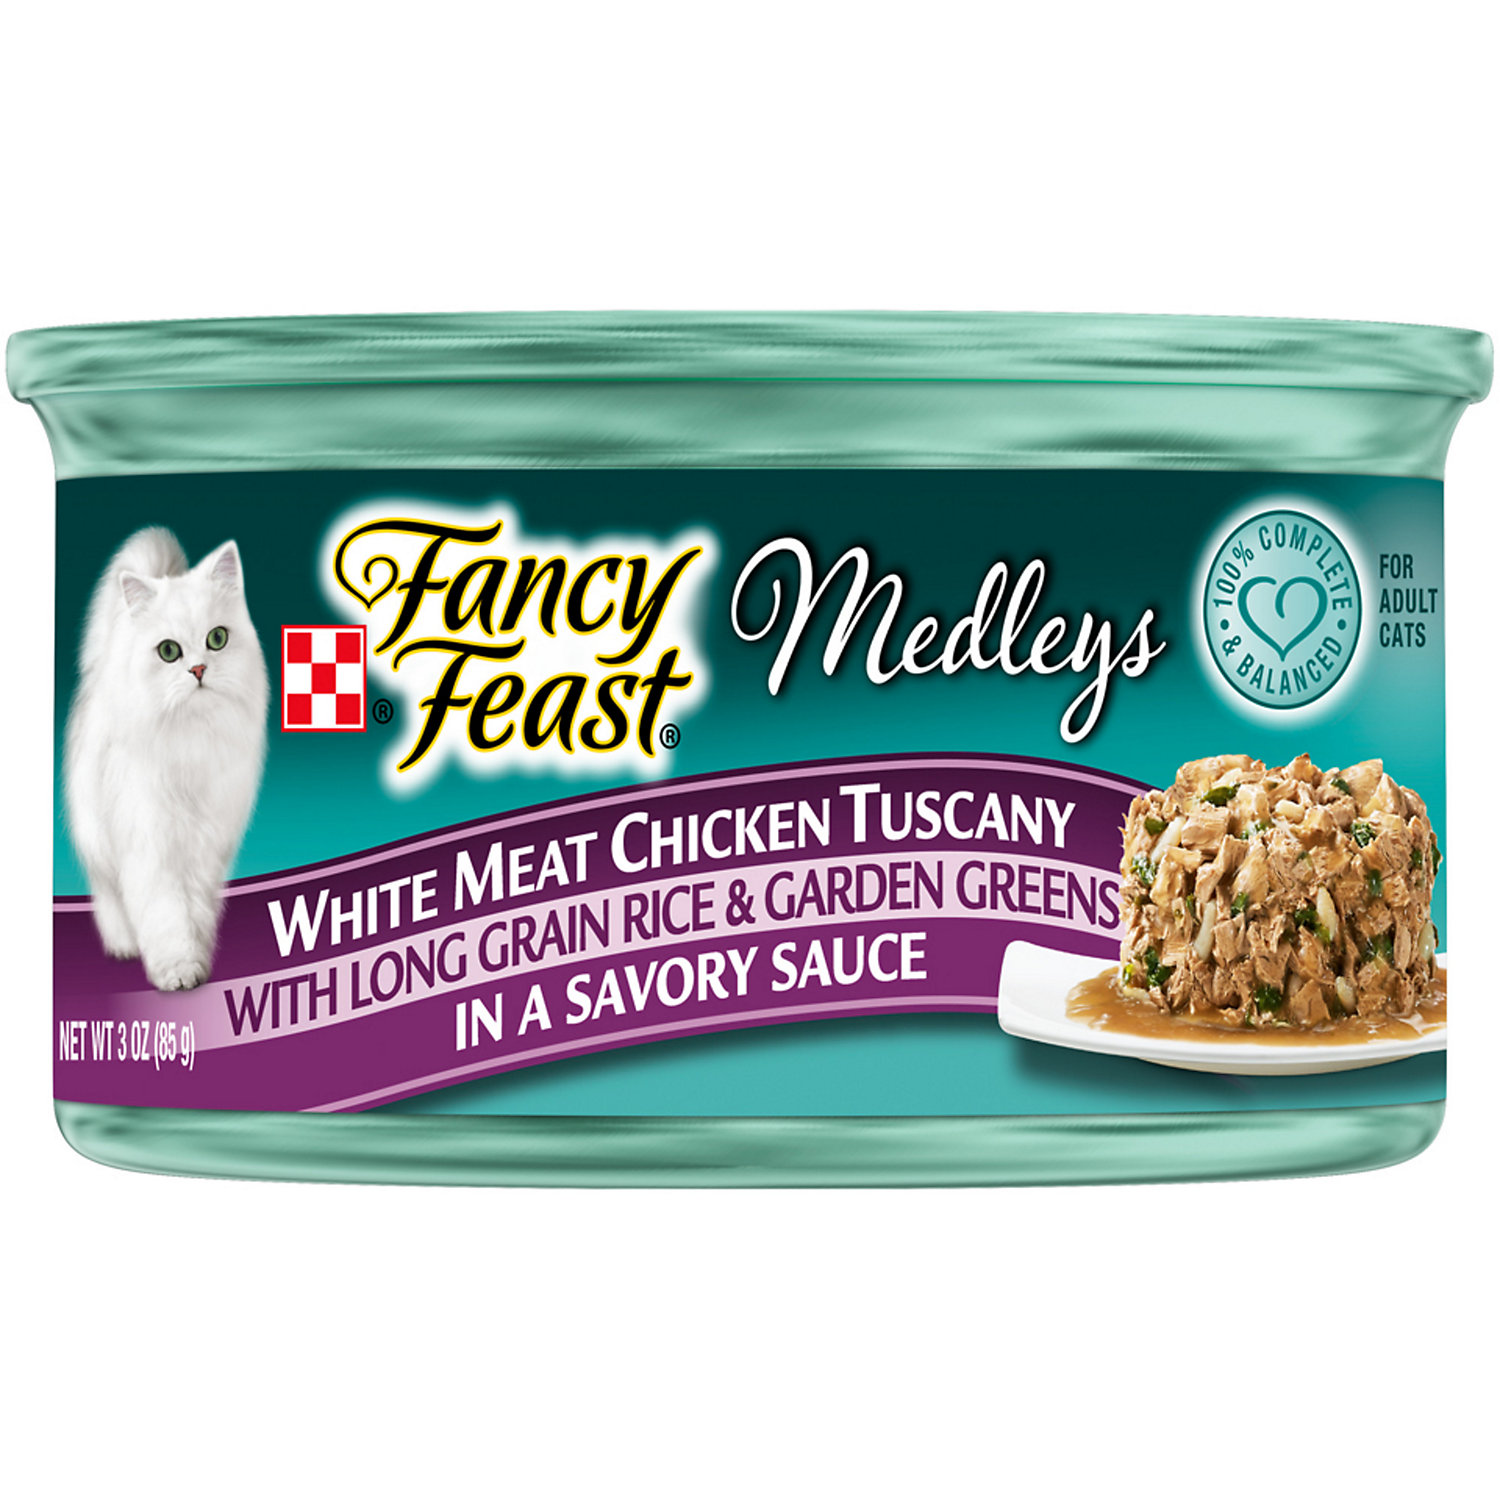 Fancy Feast Elegant Medleys White Meat Chicken Tuscany Adult Canned Cat Food In Sauce 3 Oz.